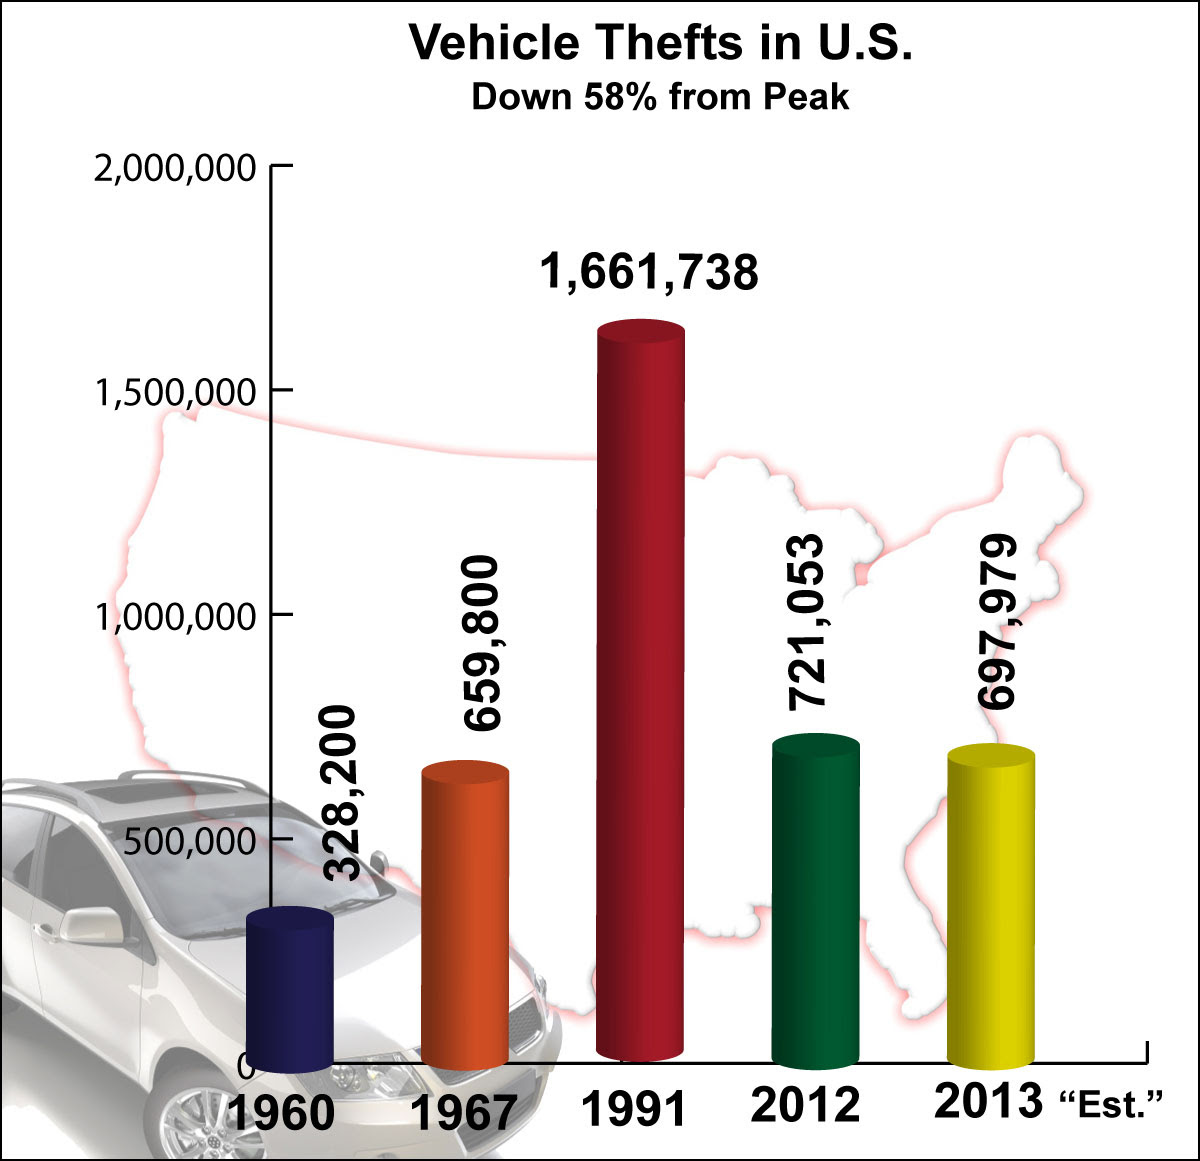 NICB Celebrates 30 th Anniversary of Hot Spots Vehicle Theft Report